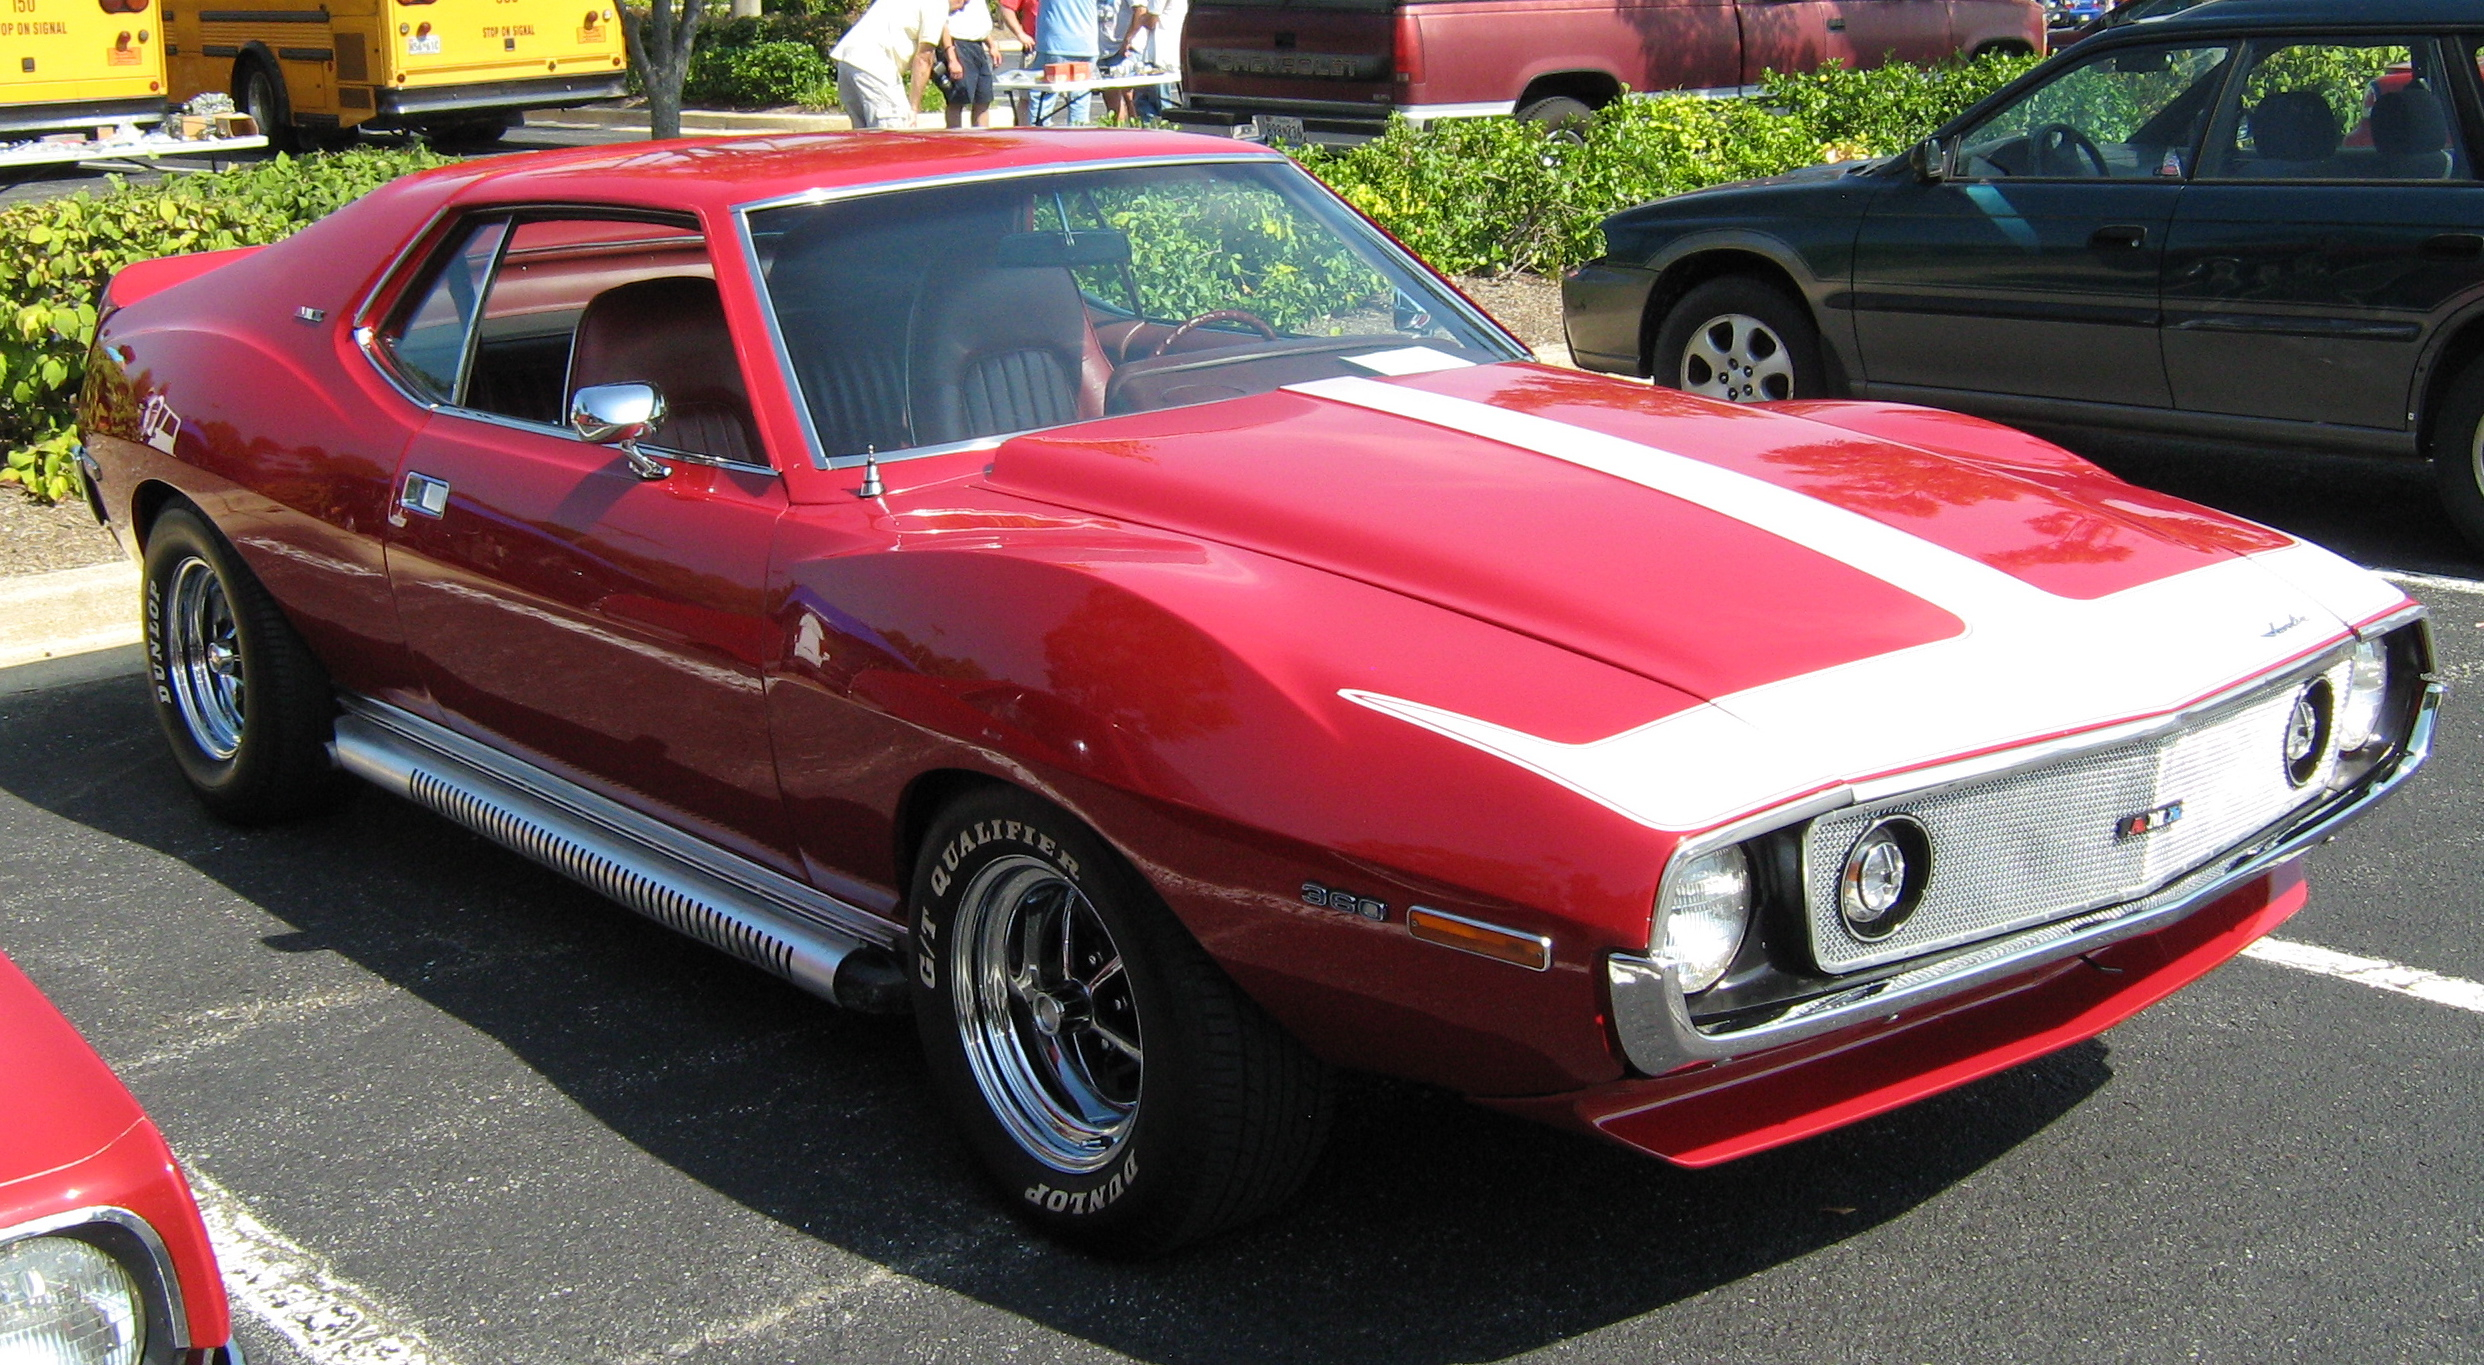 Ford Ranchero 1978 images #292